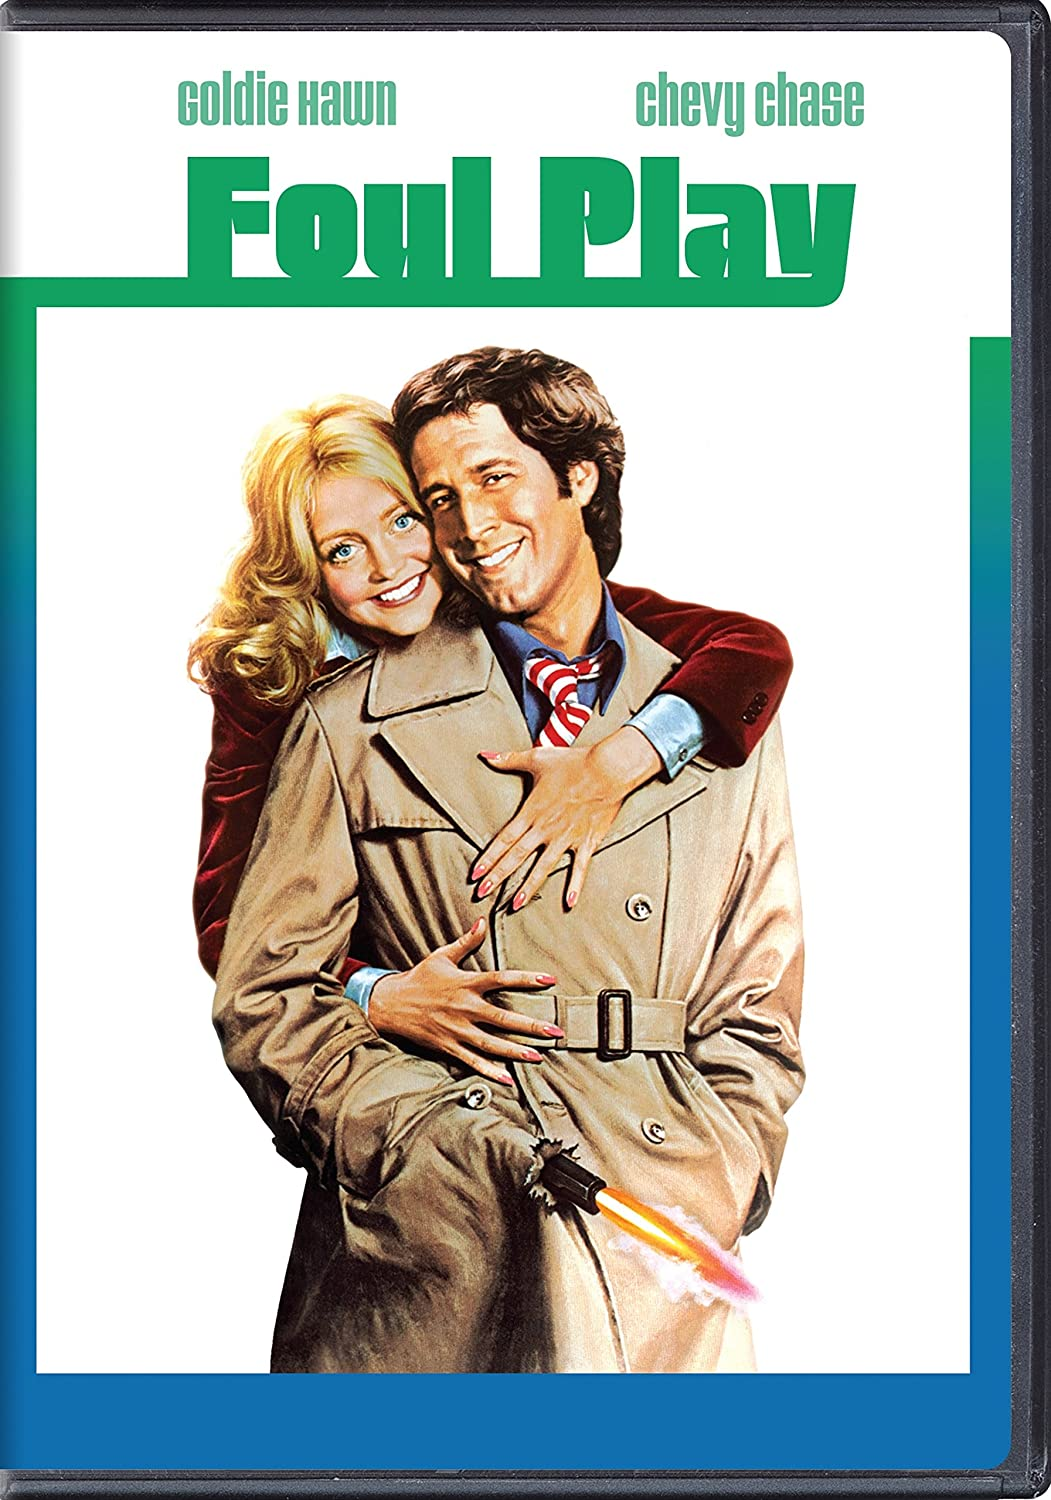 Amazon.com: Foul Play: Goldie Hawn, Chevy Chase, Burgess Meredith, Rachel  Roberts, Eugene Roche, Dudley Moore, Marilyn Sokol, Brian Dennehy, Marc  Lawrence, Billy Barty, Colin Higgins: Movies & TV